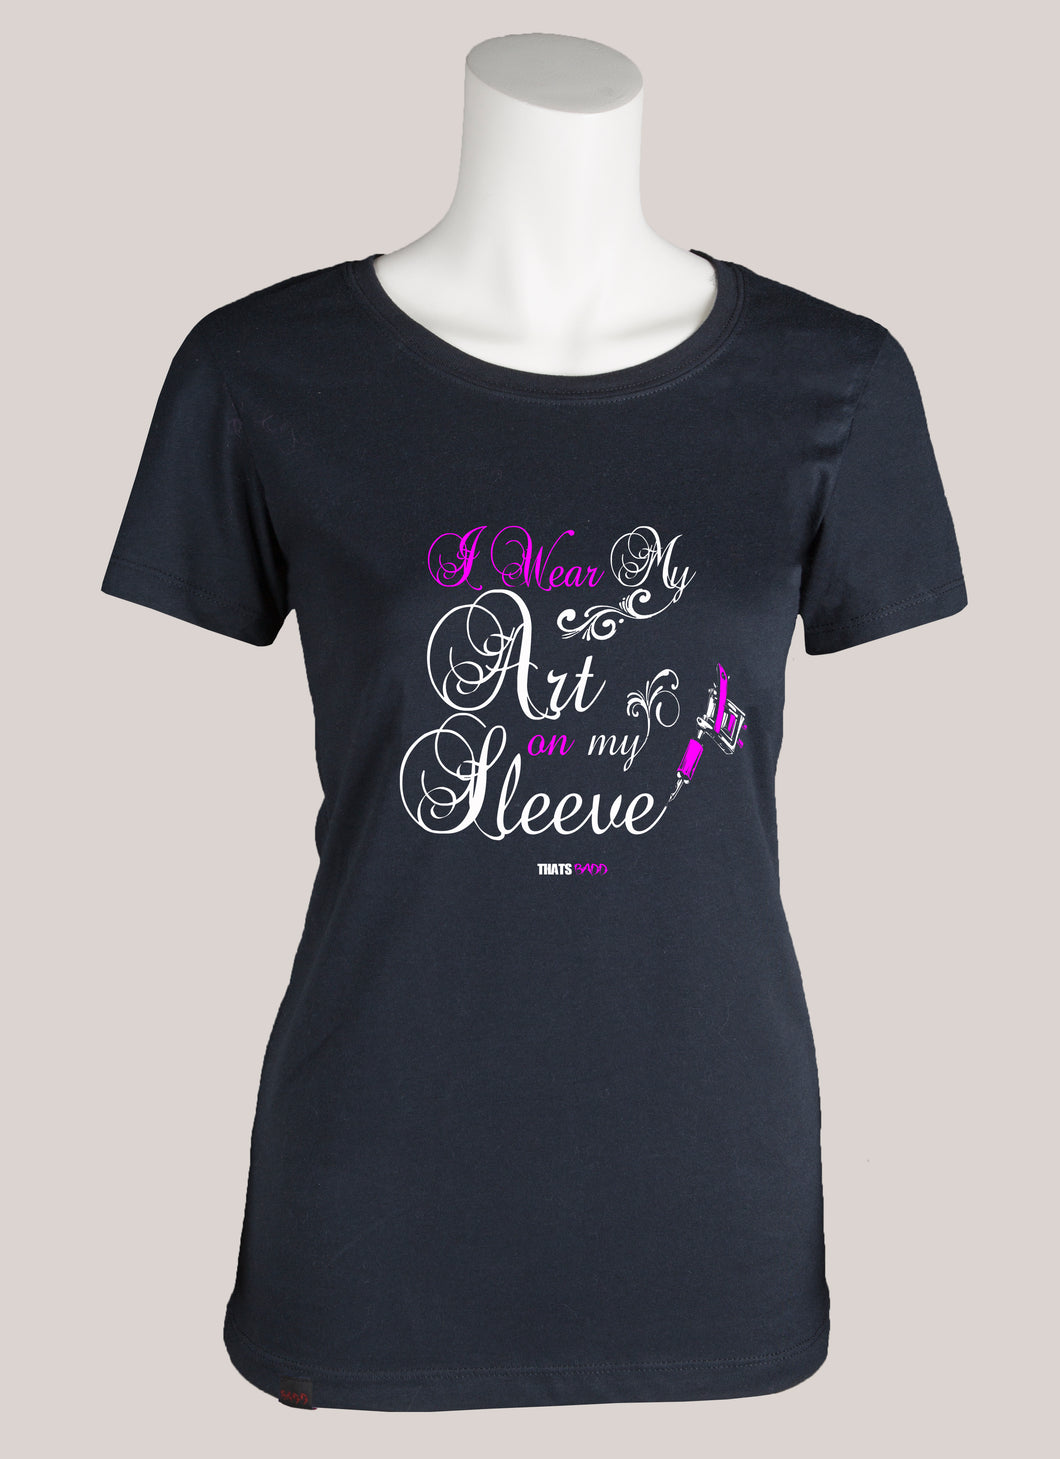 ART ON MY SLEEVE Women's Tattoo T-Shirt